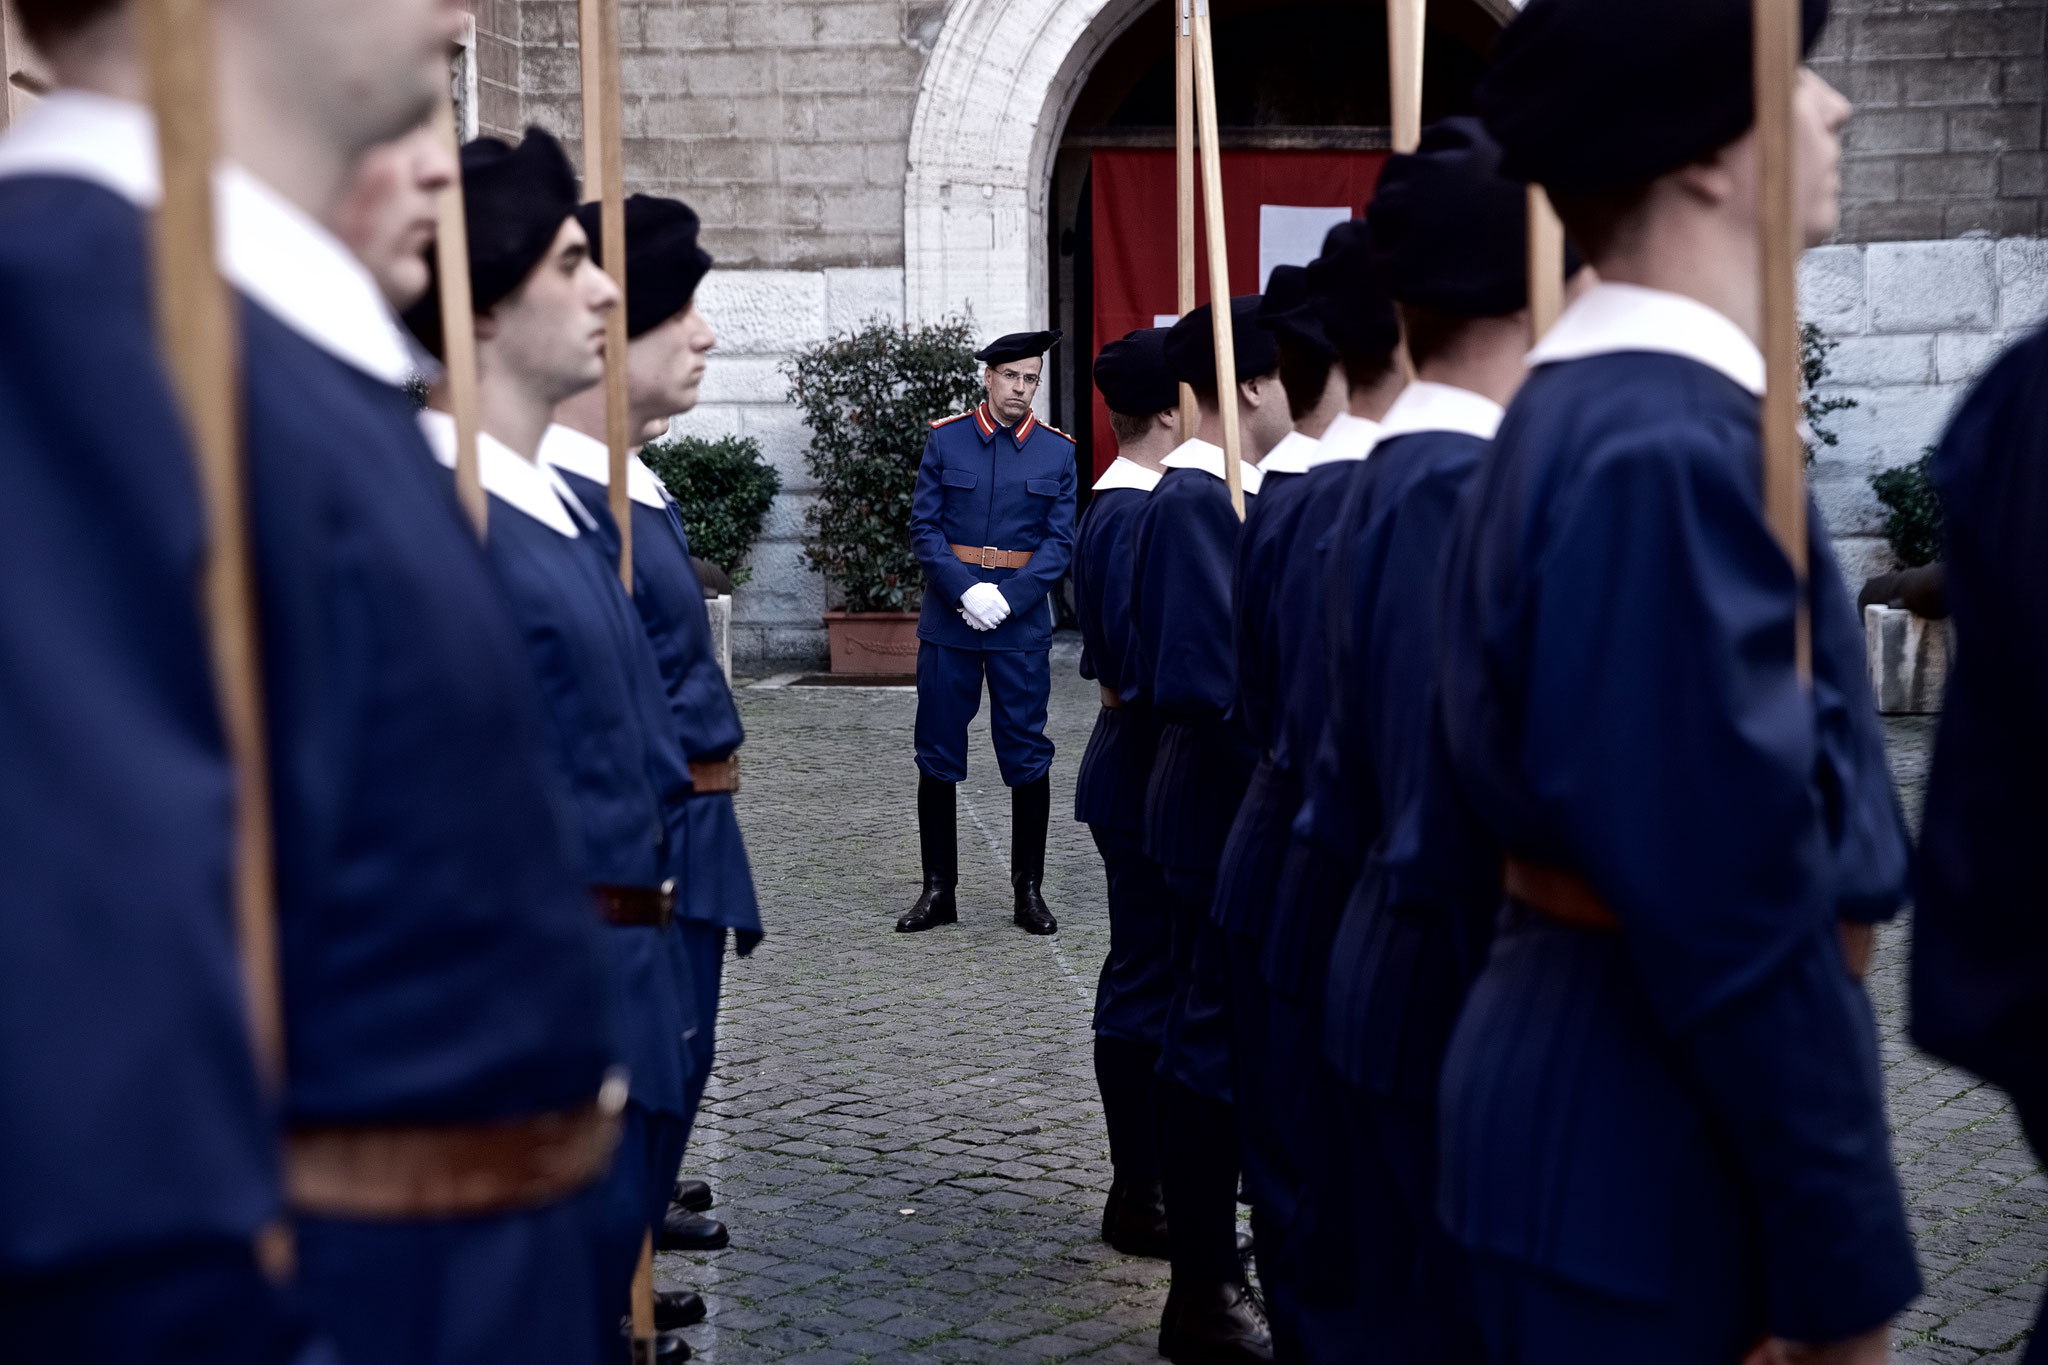 The commander inspects the uniforms in the court of the quarters before final exam.